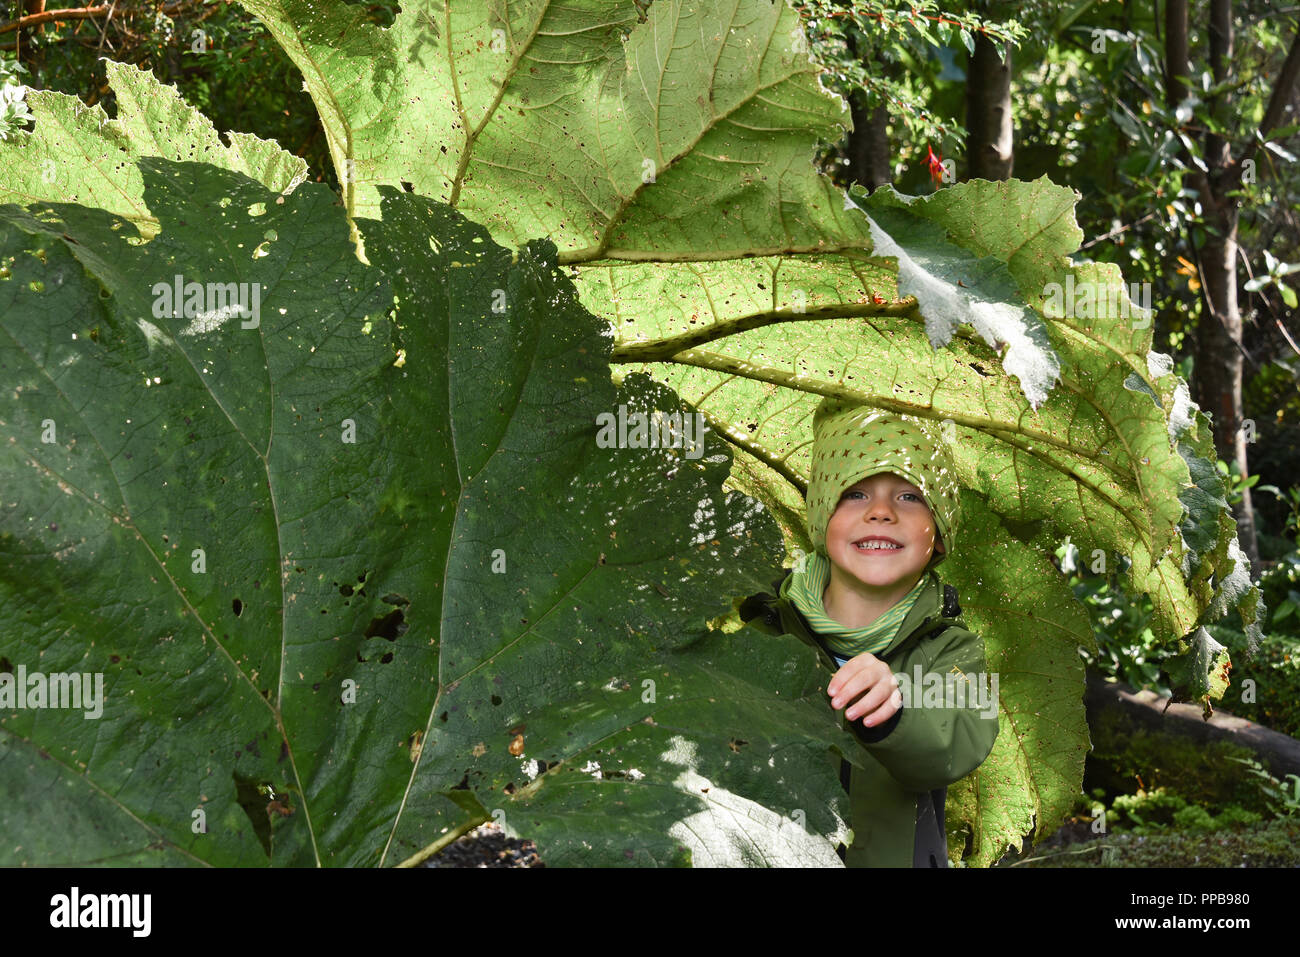 Little boy under Giant rhubarb (Gunnera manicata), El Bosque Encantado, temperate rainforest with moss and lichen - Stock Image